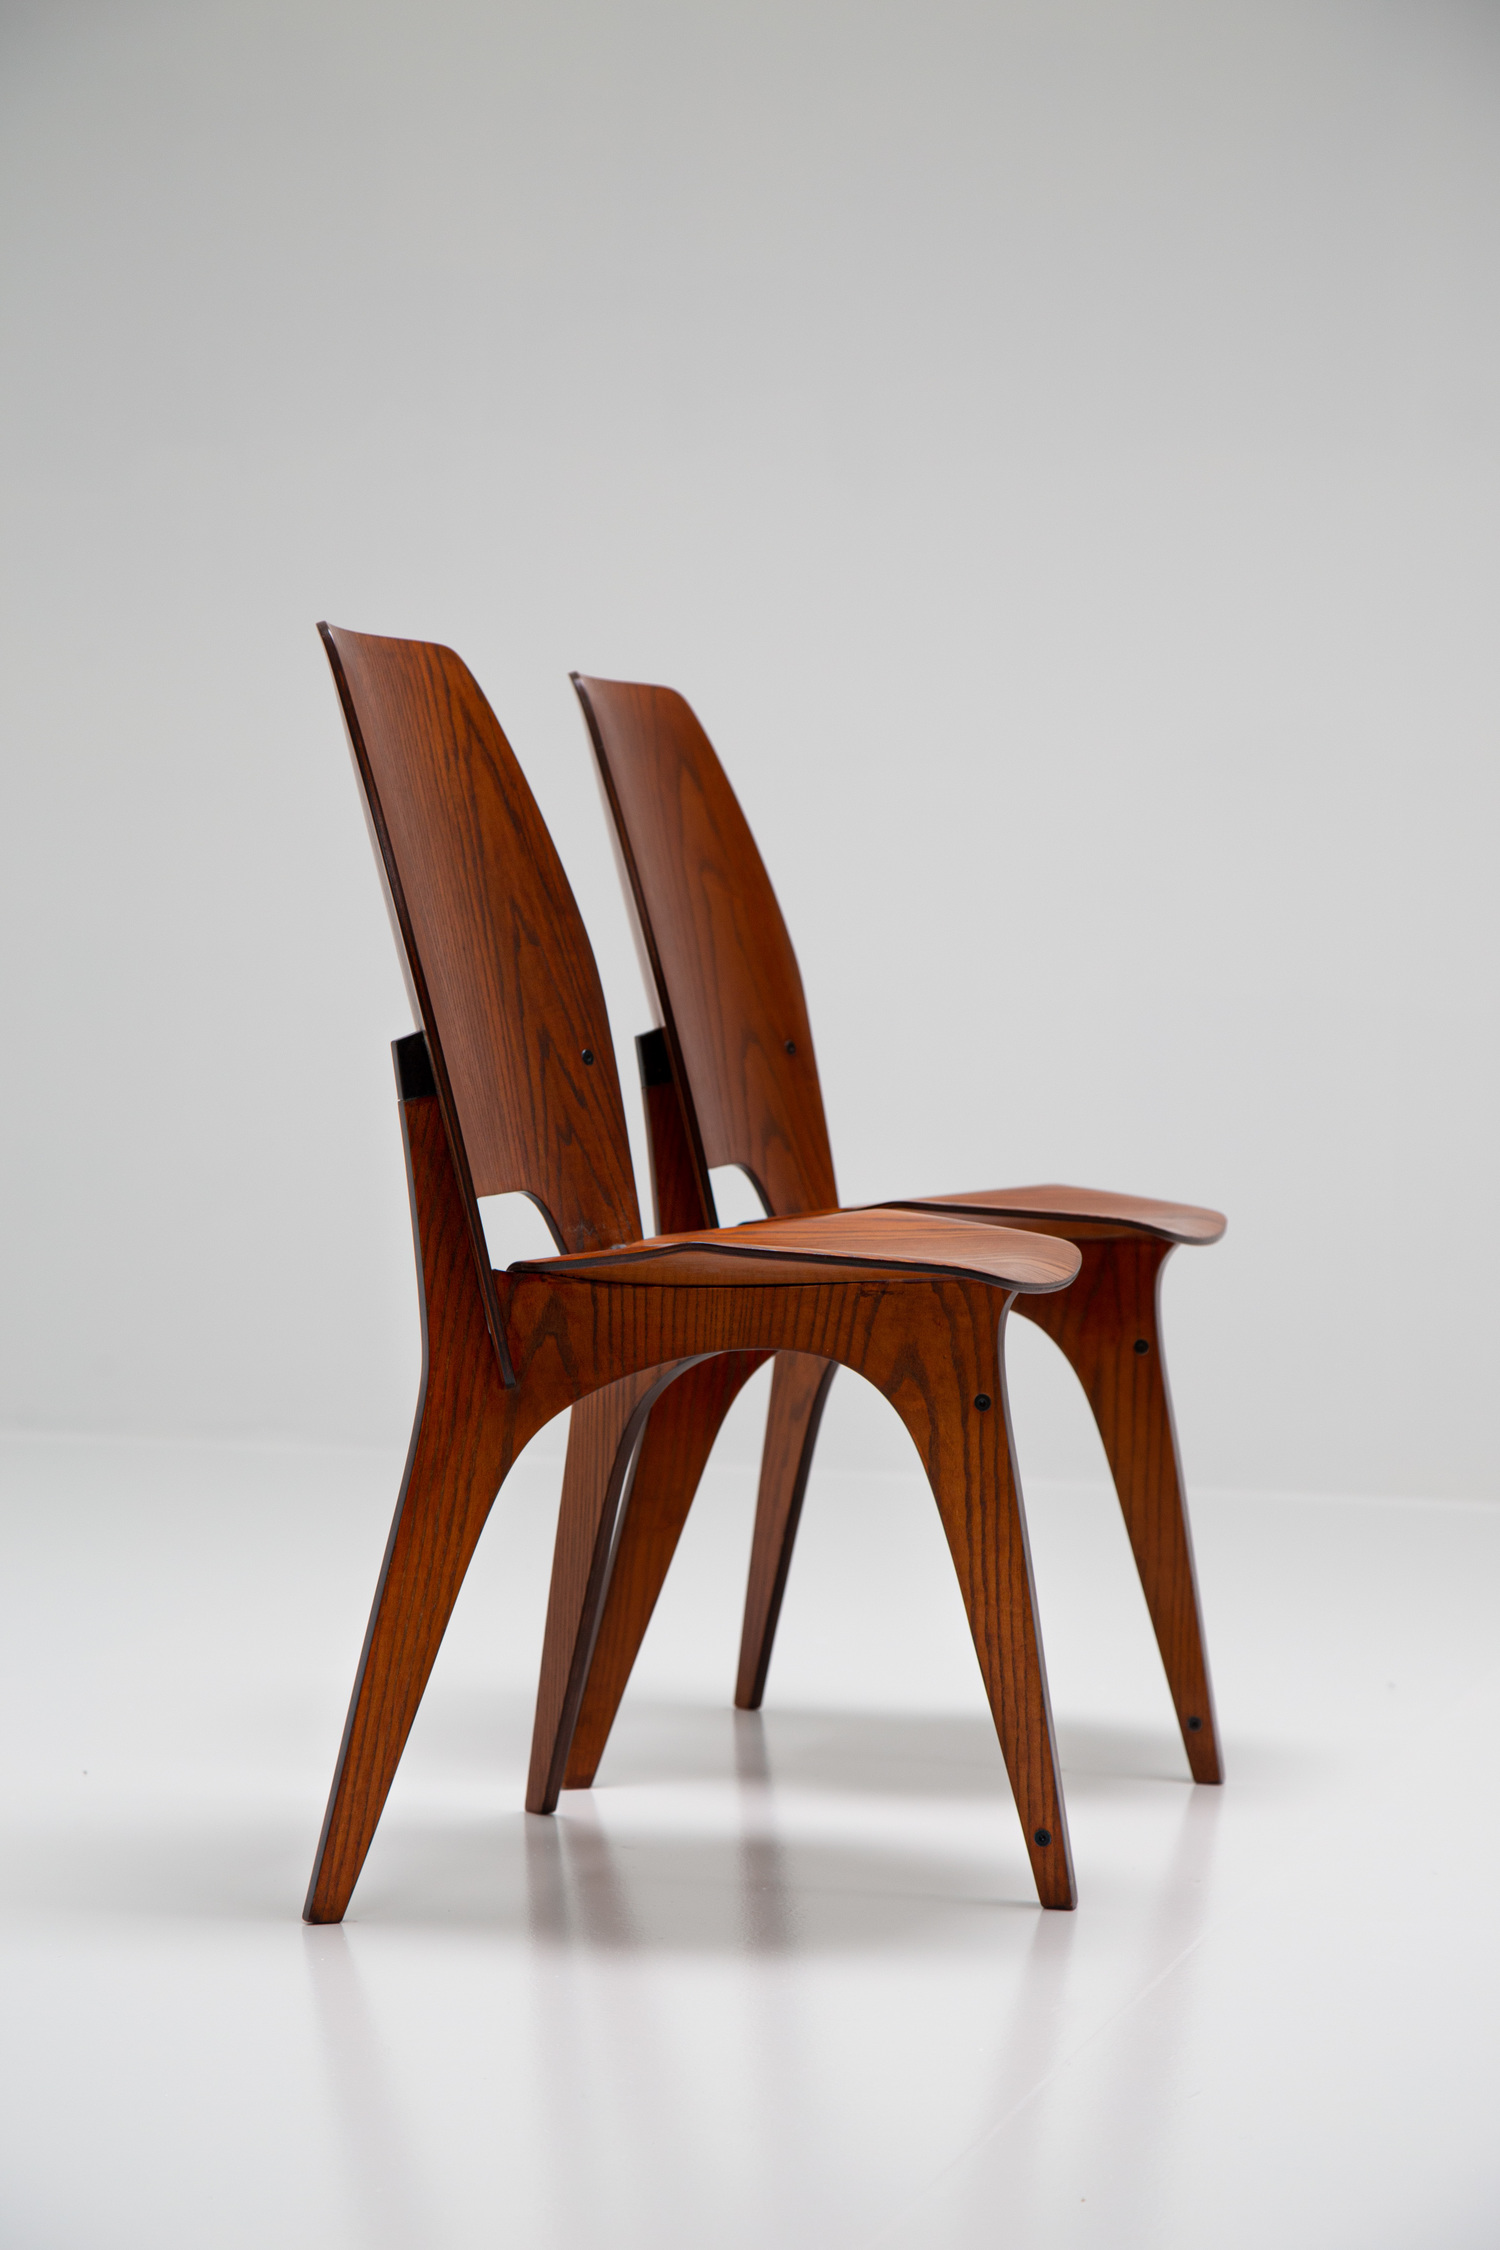 Pair of chairs by Eugenio Gerli for Tecno